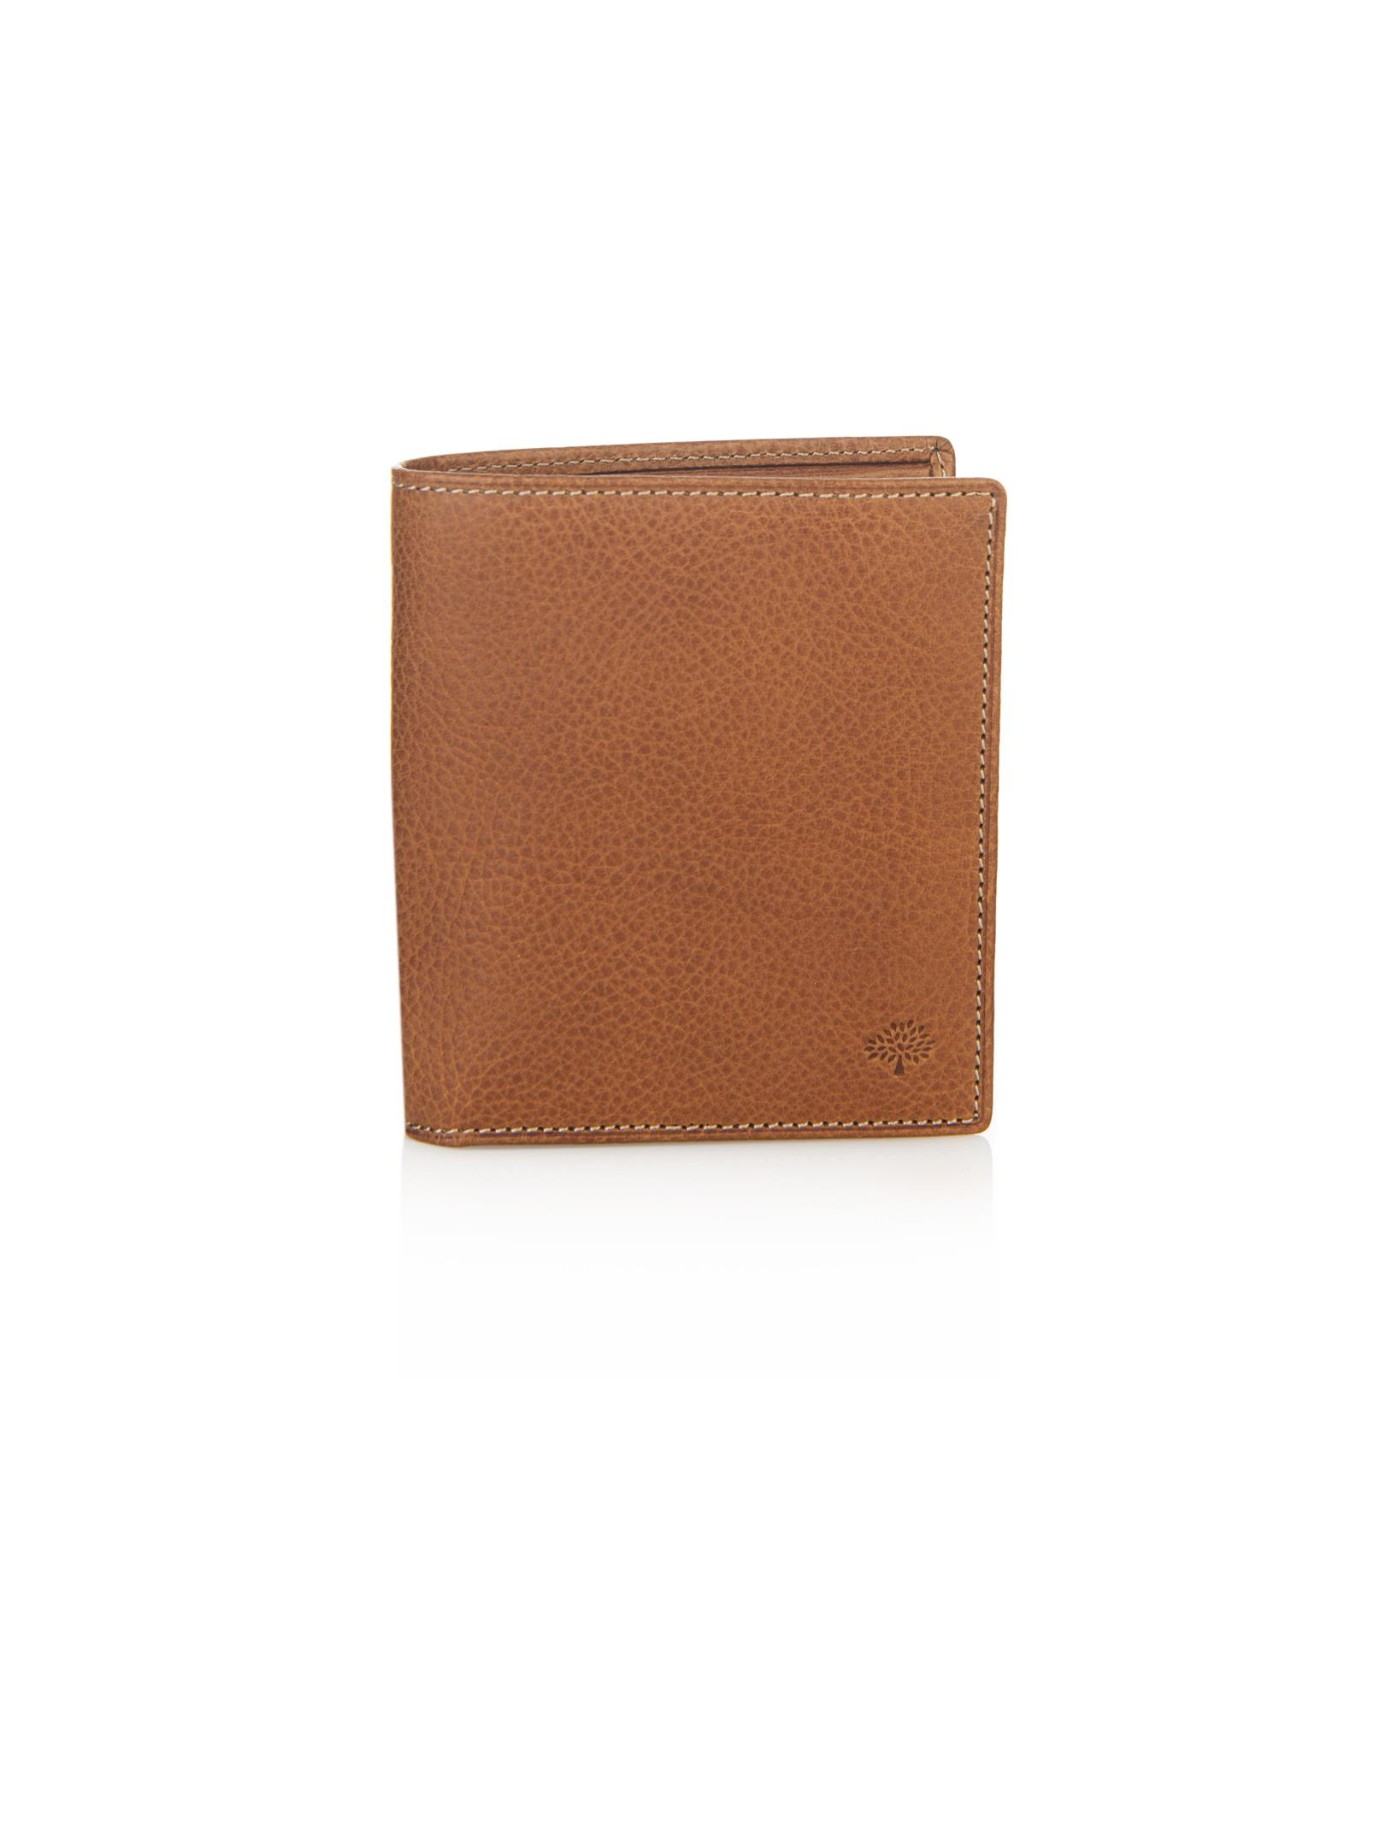 668f672bb81d ... sweden lyst mulberry mini tri fold leather wallet in brown for men  0d96e 04bc3